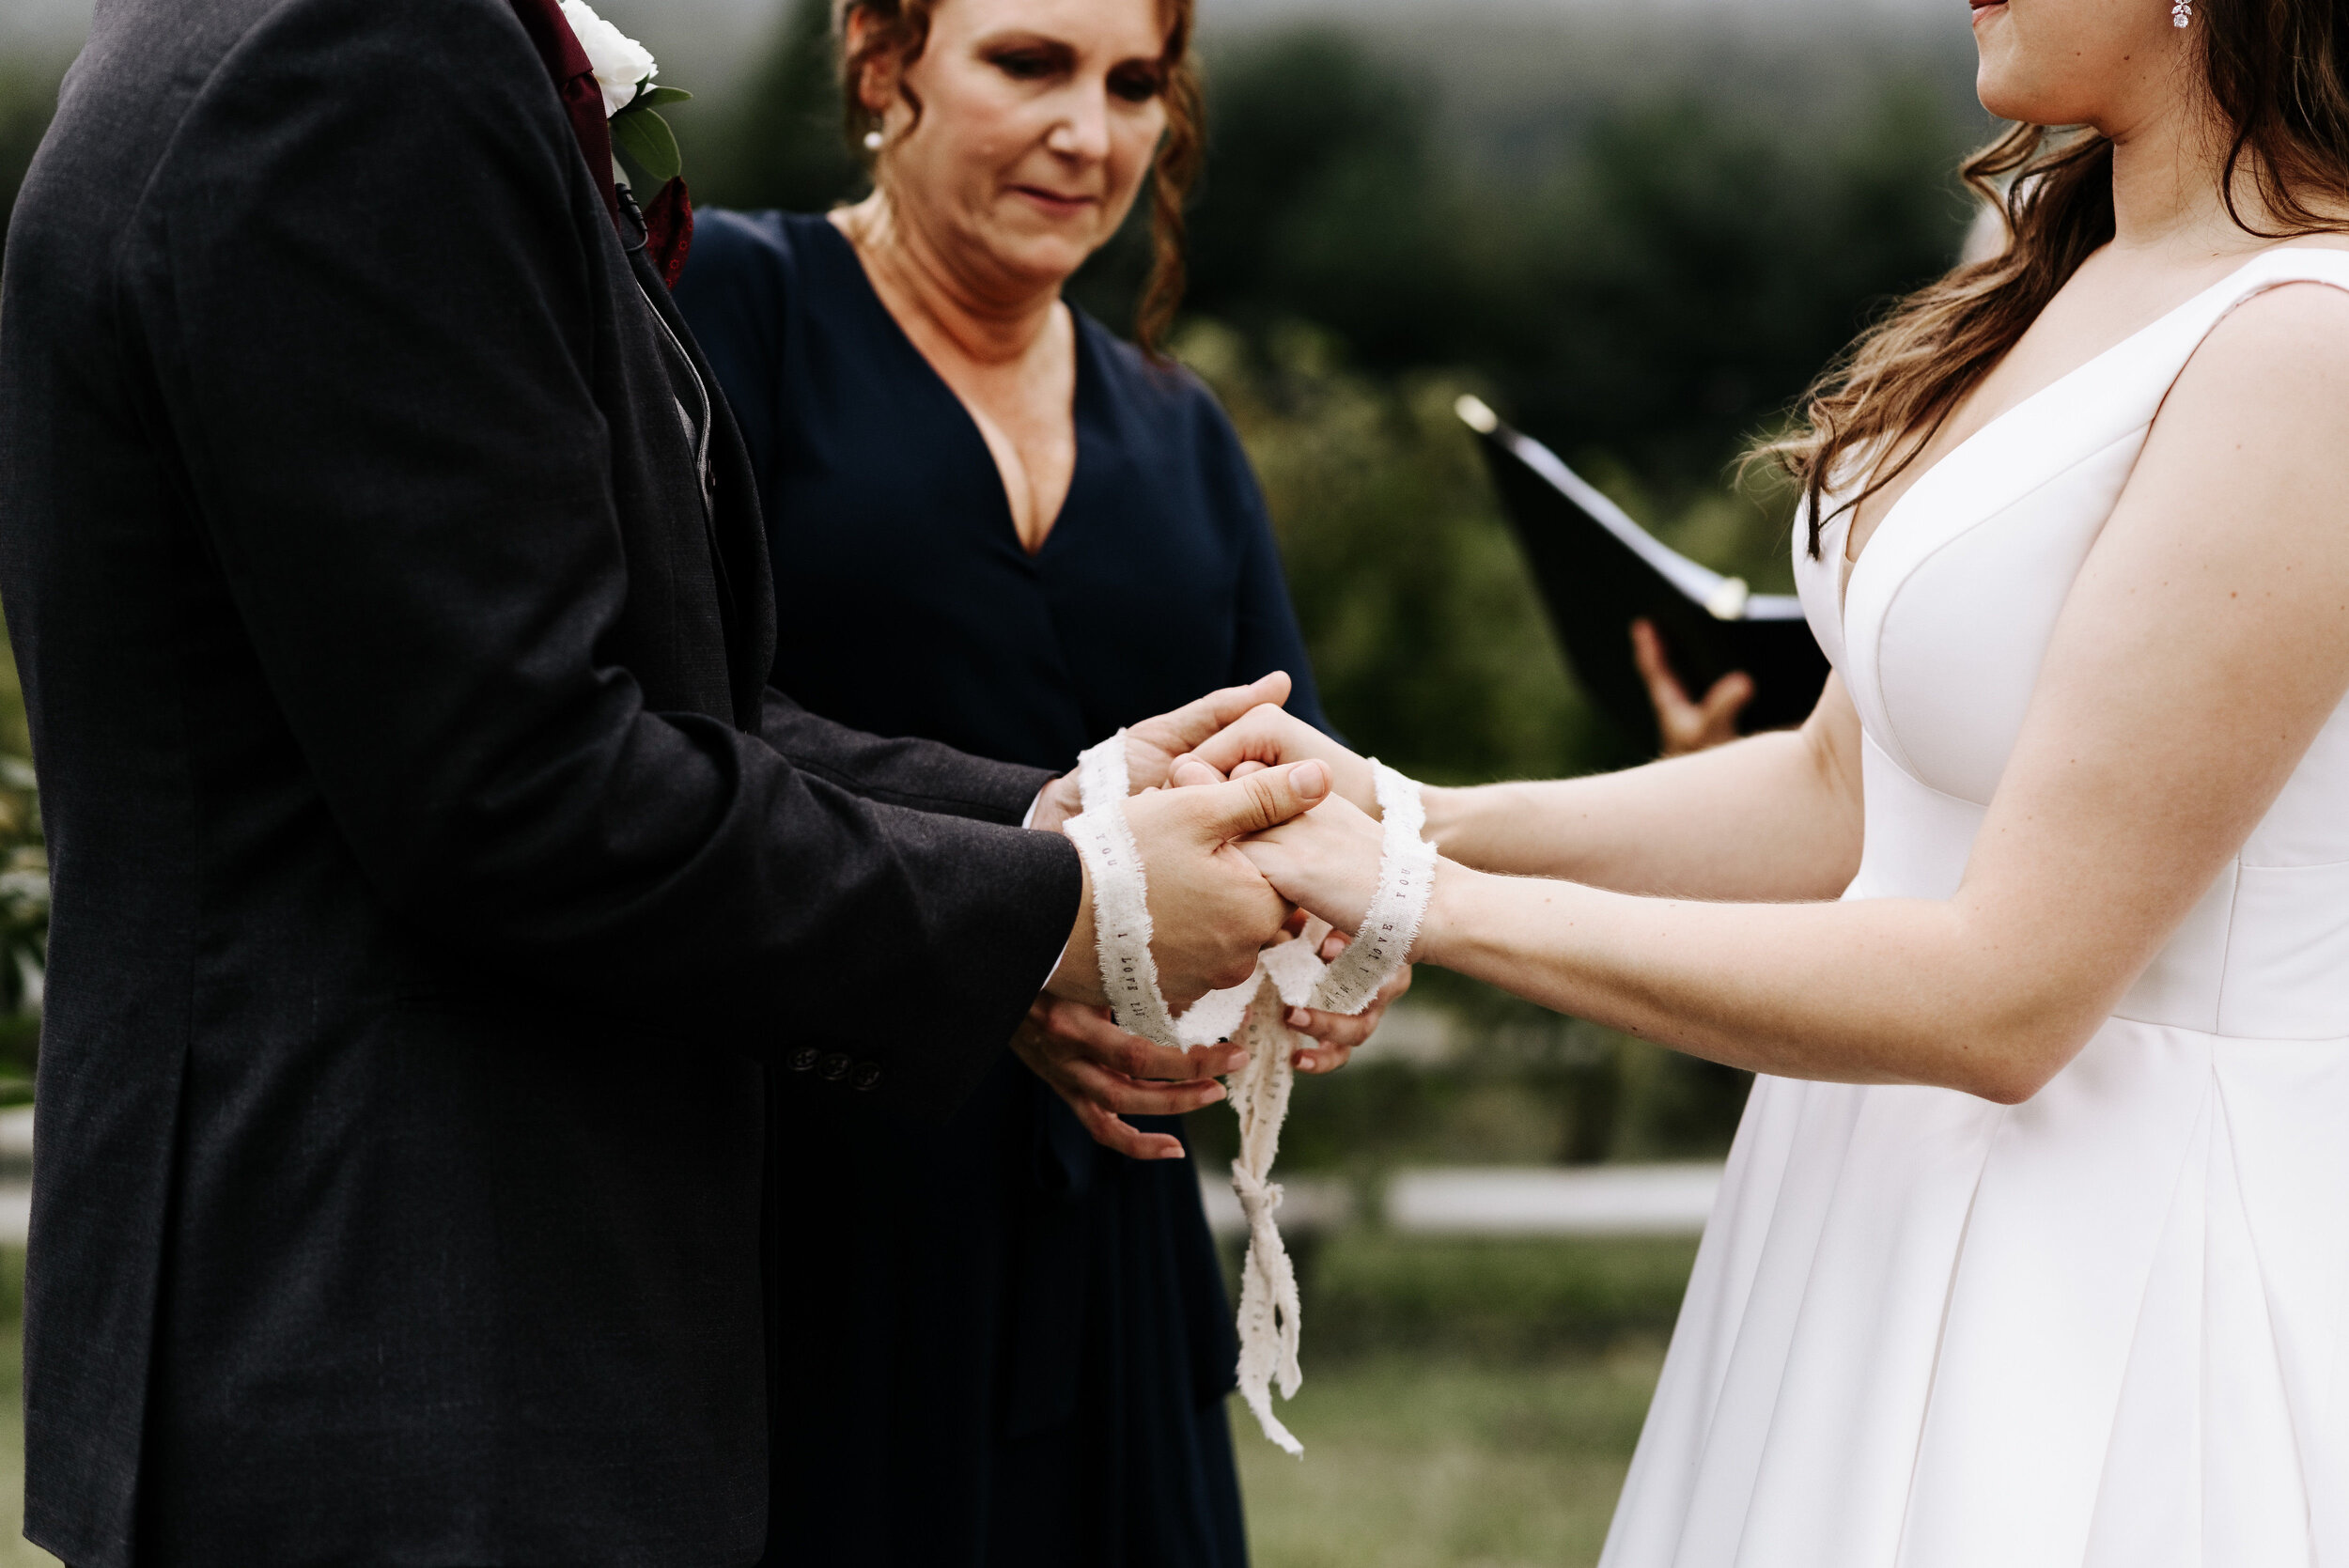 Allison_Nolan_Moss_Vineyards_Wedding_Charlottesville_Virginia_Photography_by_V_48.jpg